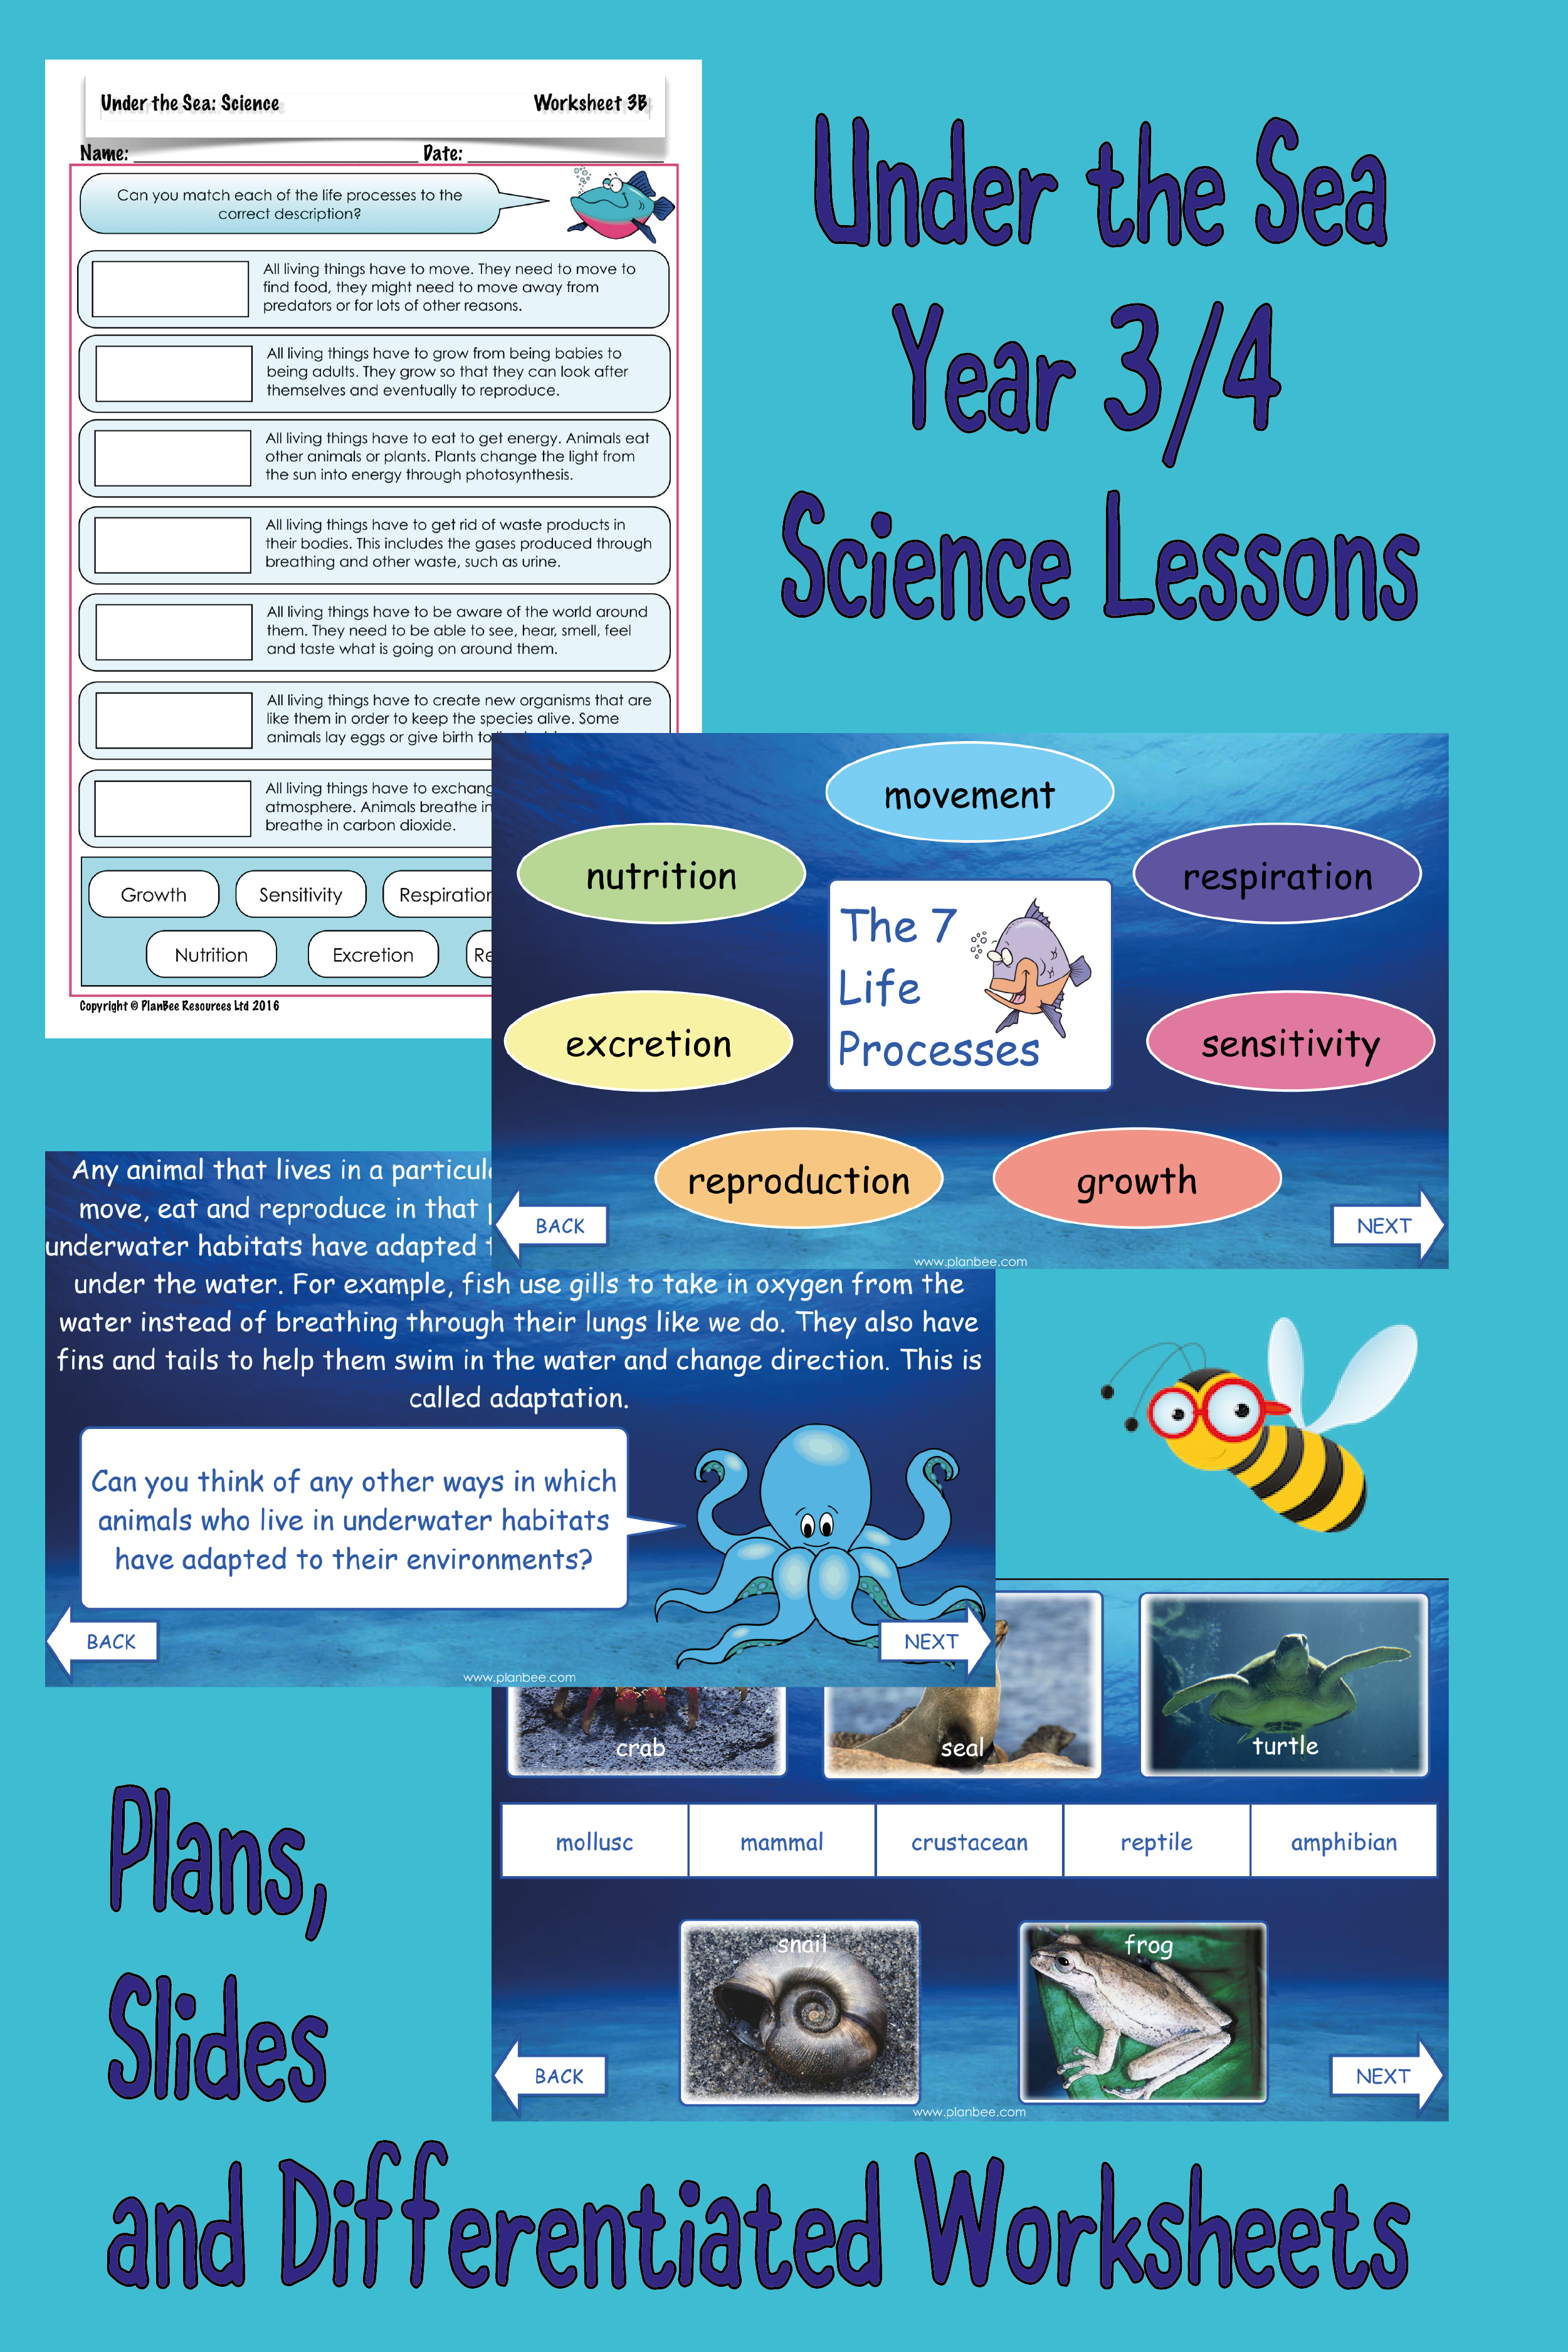 Under the Sea All SCIENCE Lessons in Topic Science lessons